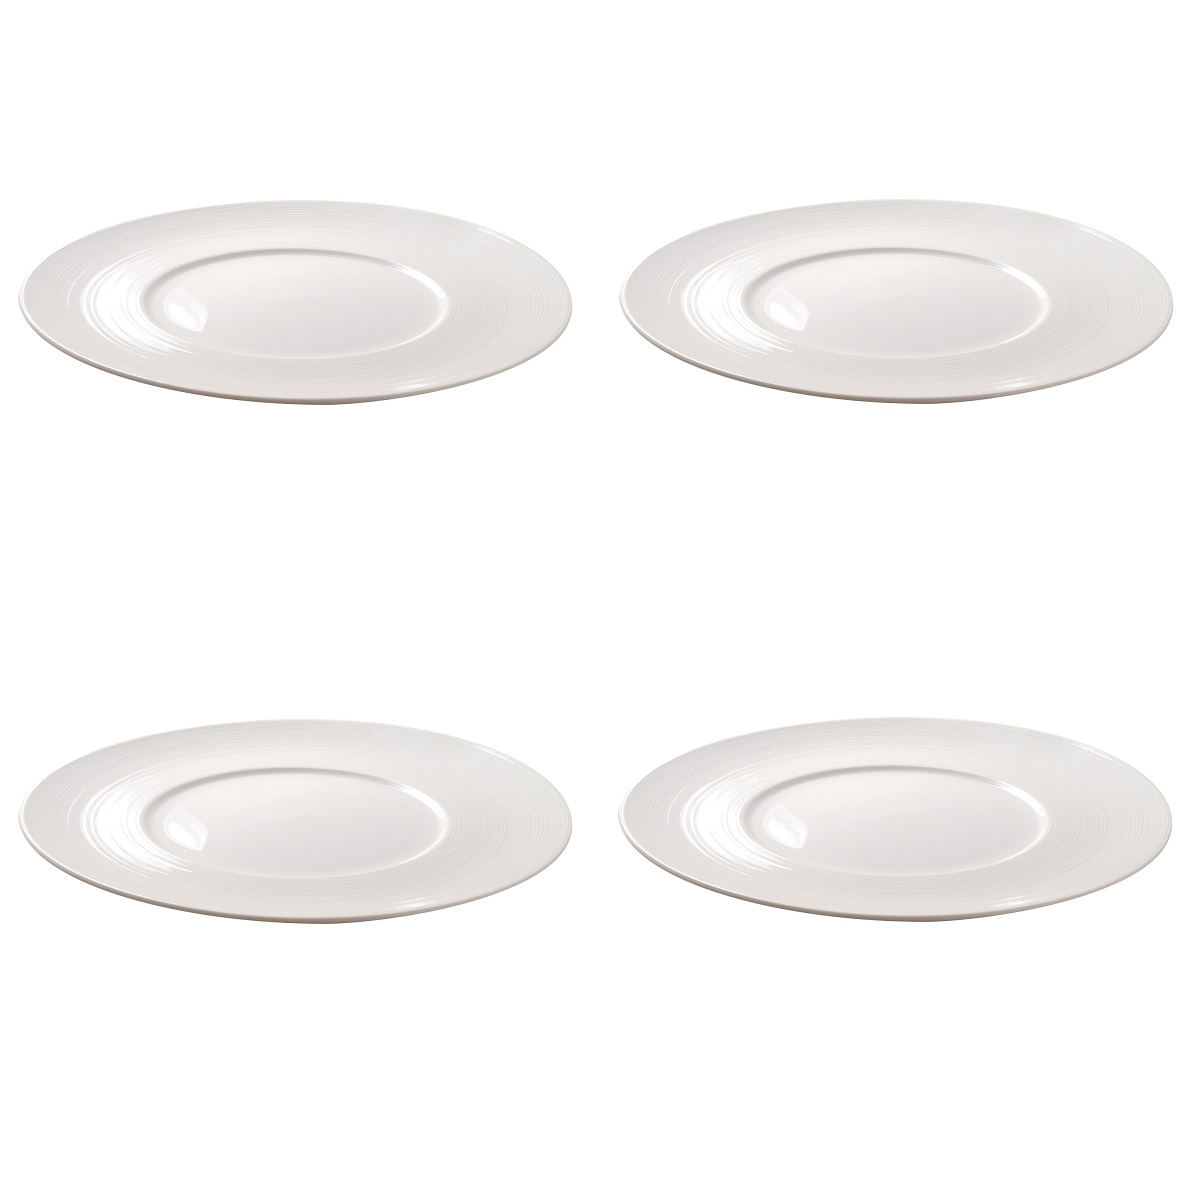 4 Vertex China Radiance 12  White Embossed Dinner Plates Restaurant RA-21N  sc 1 st  Walmart & 4 Vertex China Radiance 12